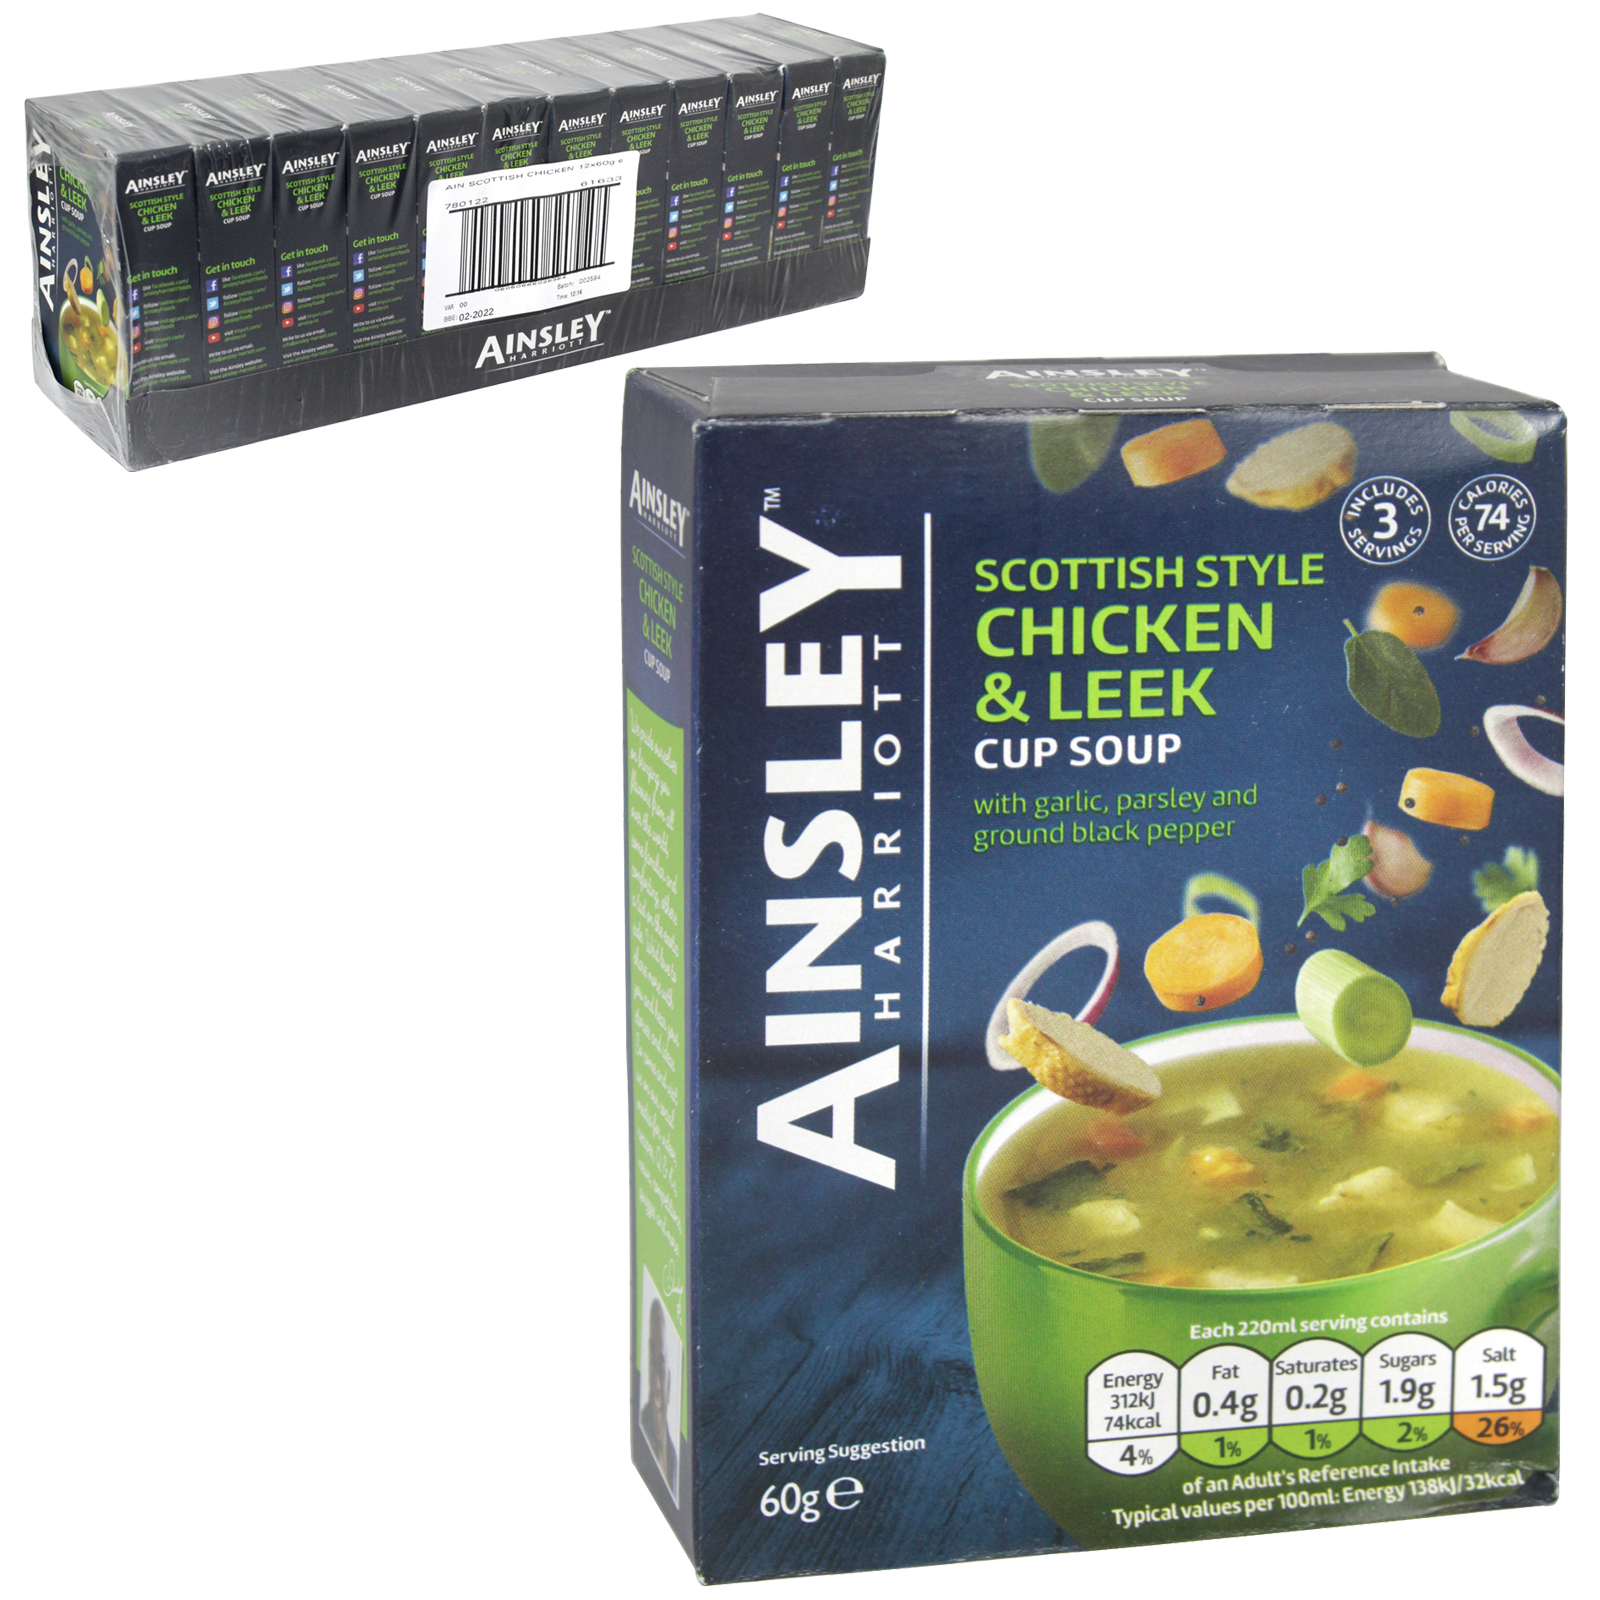 AINSLEY CUP-A-SOUP 3PK CHICKEN & LEEK